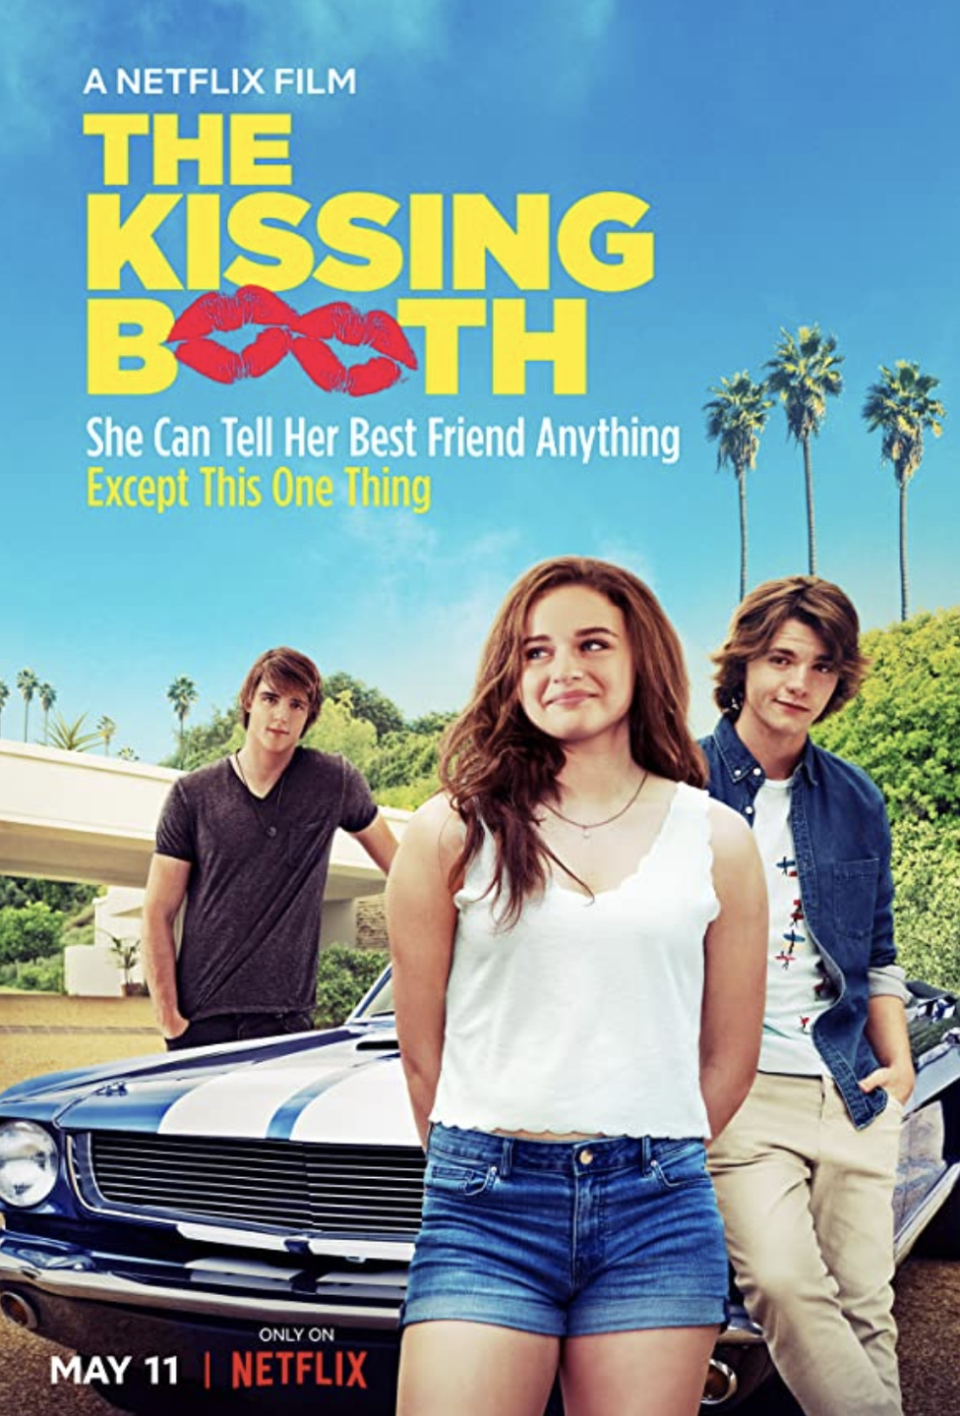 "<p>Elle is best friends with Lee and they tell each other <em>everything</em>. The only problem? She hasn't shared her biggest secret: she's in love with his brother.</p><p><a class=""link rapid-noclick-resp"" href=""https://www.netflix.com/search?q=The+Kissing+Booth&jbv=80143556"" rel=""nofollow noopener"" target=""_blank"" data-ylk=""slk:STREAM NOW"">STREAM NOW</a></p>"